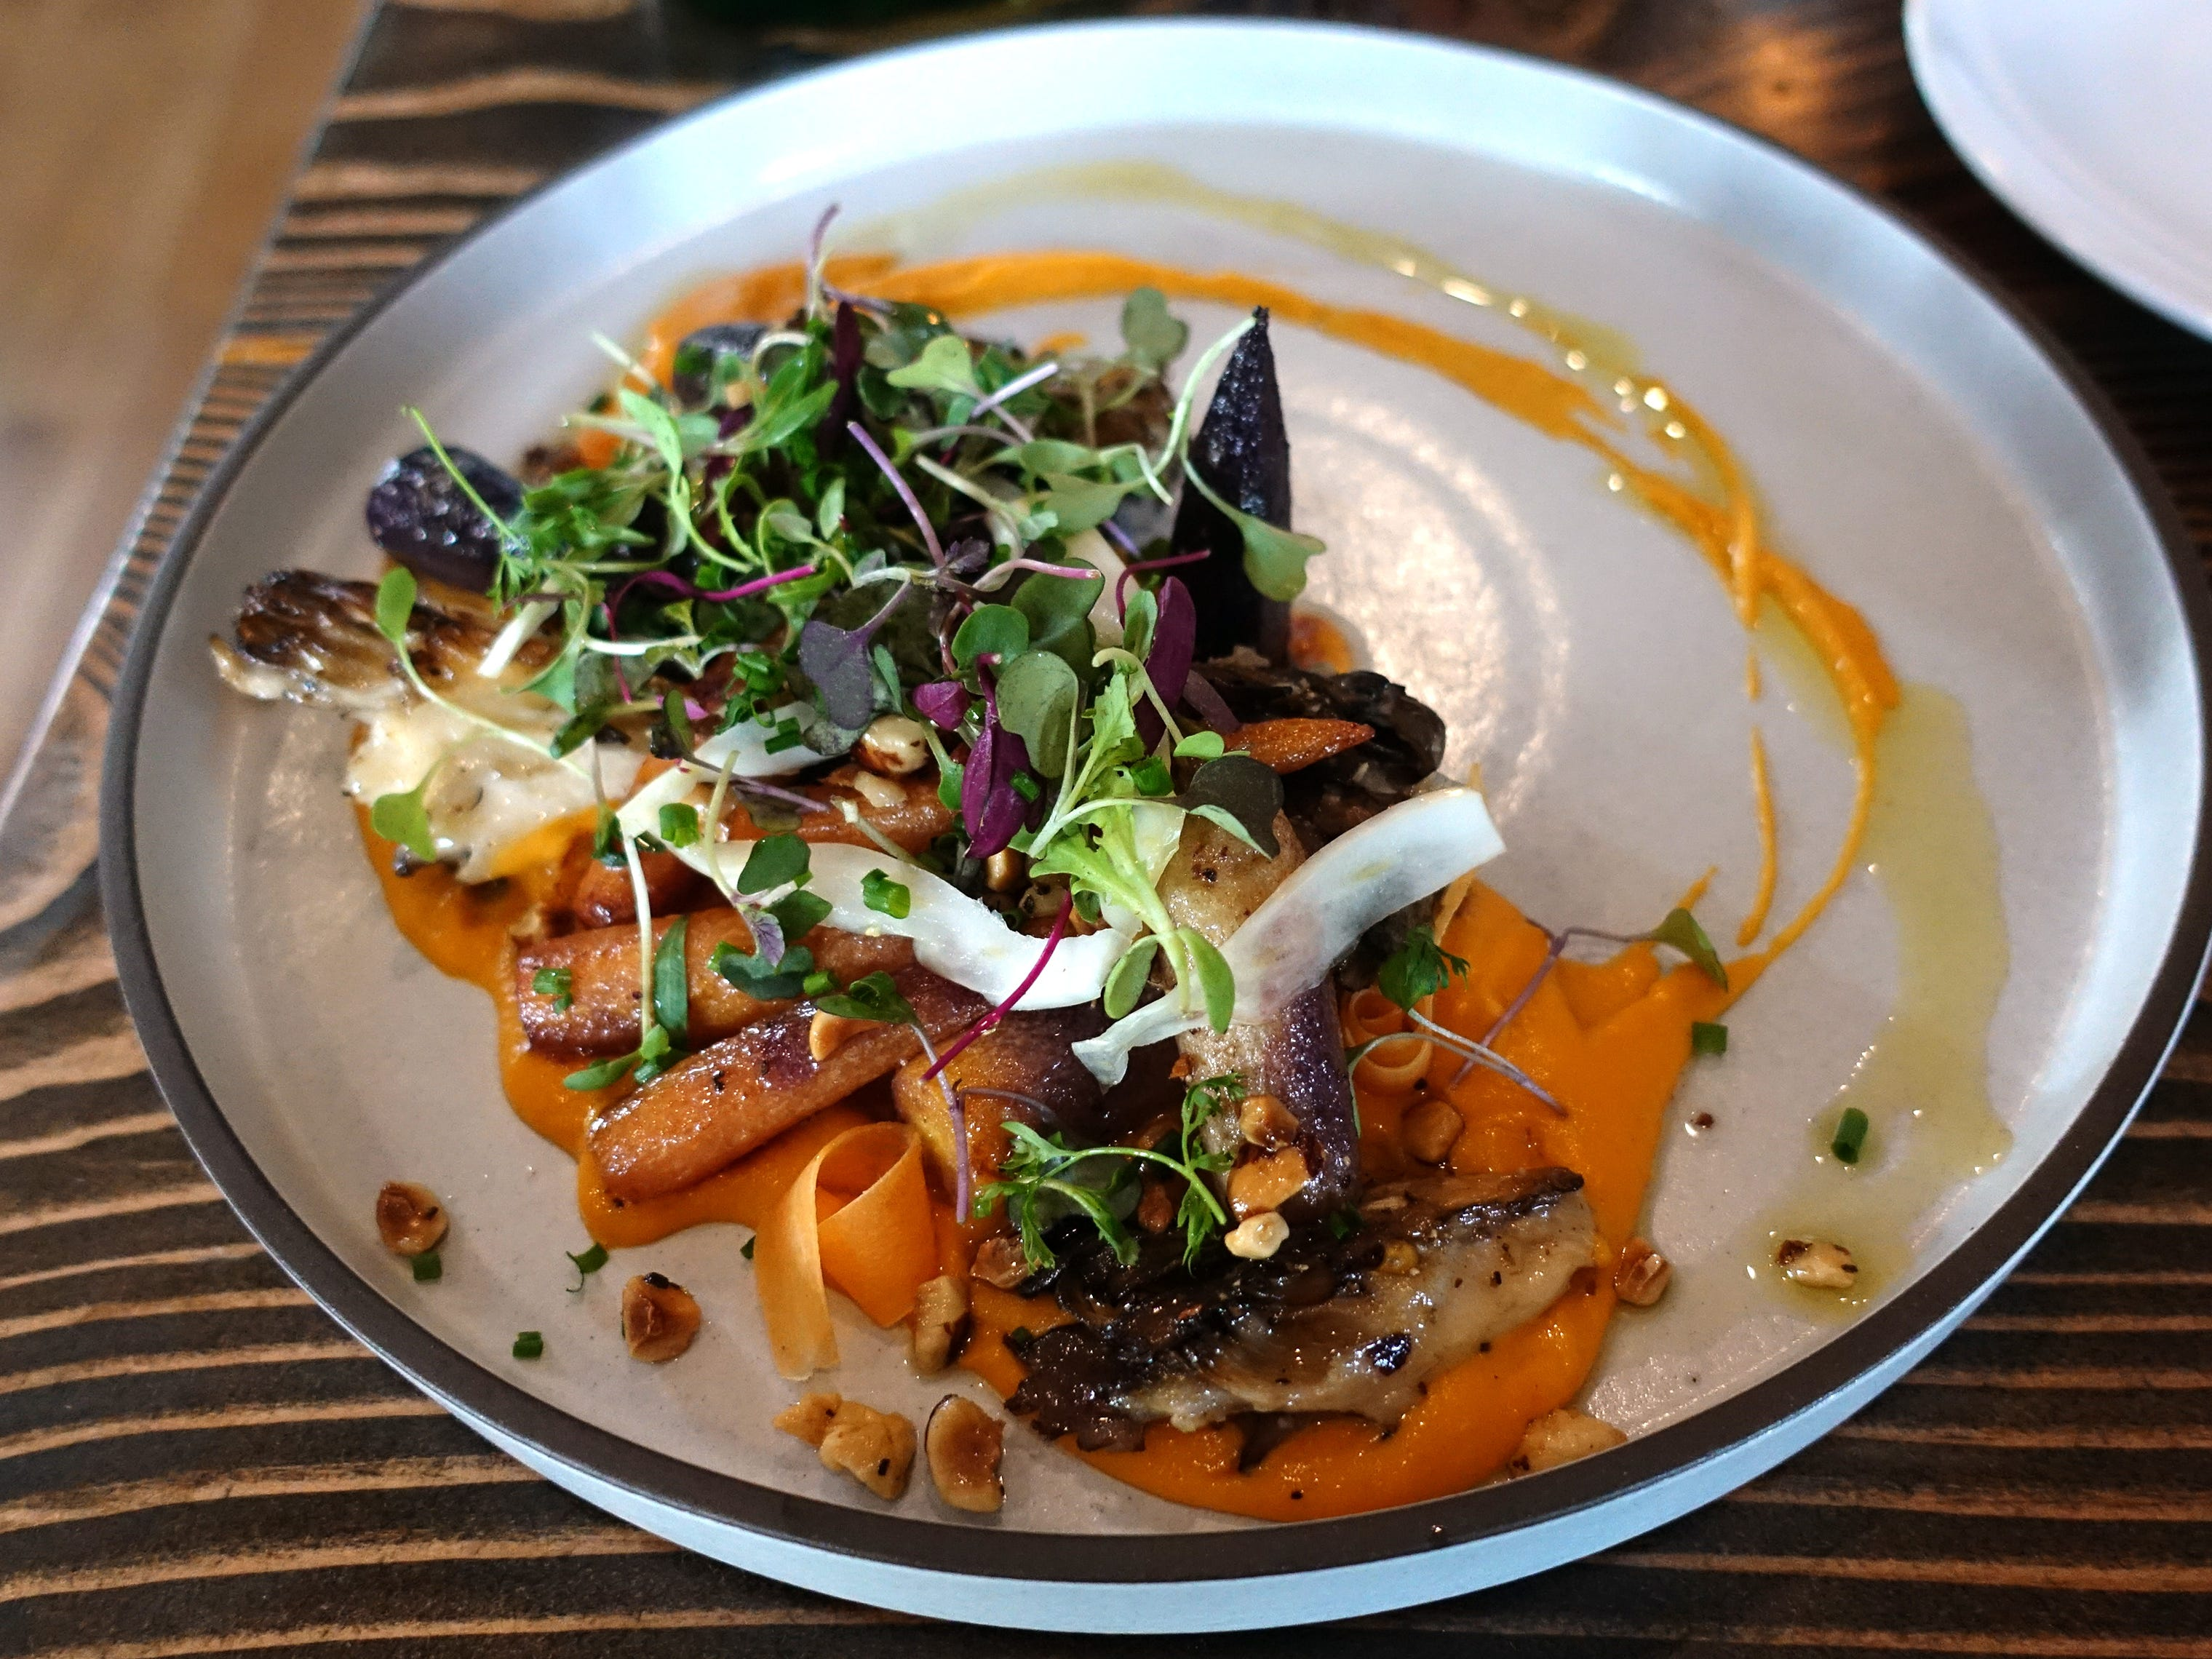 Roasted carrots with sweet potato puree, maitake mushrooms, hazelnuts and pickled fennel at Hidden Kitchen in Phoenix.